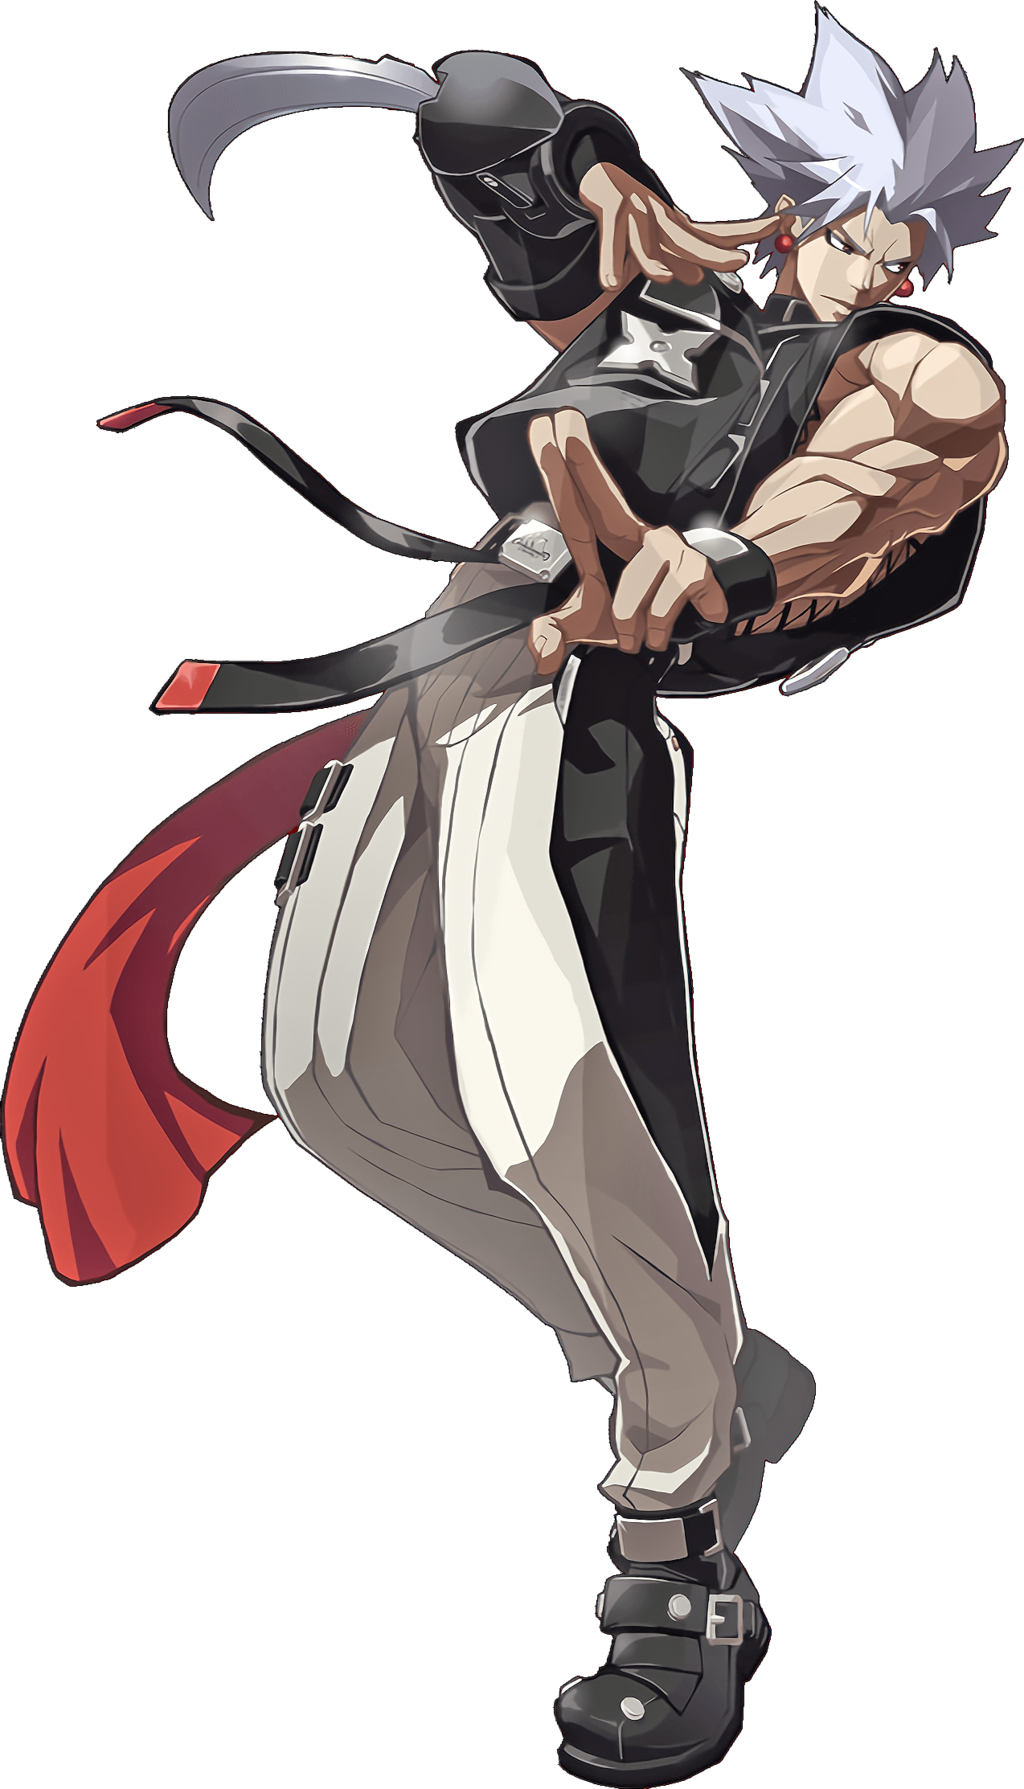 Guilty Gear Xrd Revelator Chipp Zanuff by hes6789